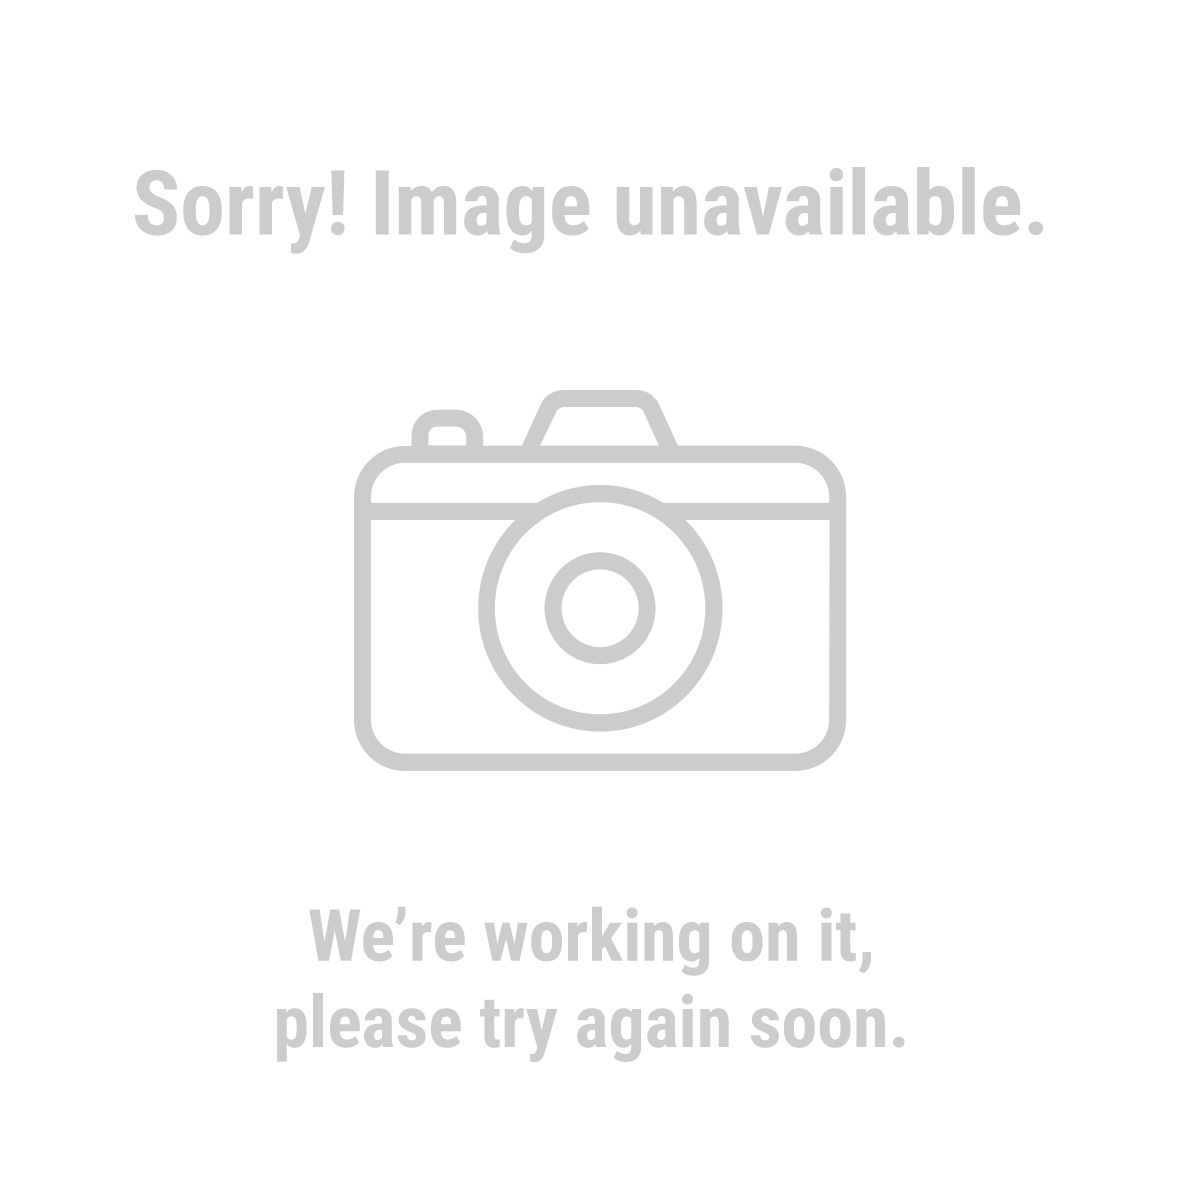 90748 $100 Harbor Freight Gift Card